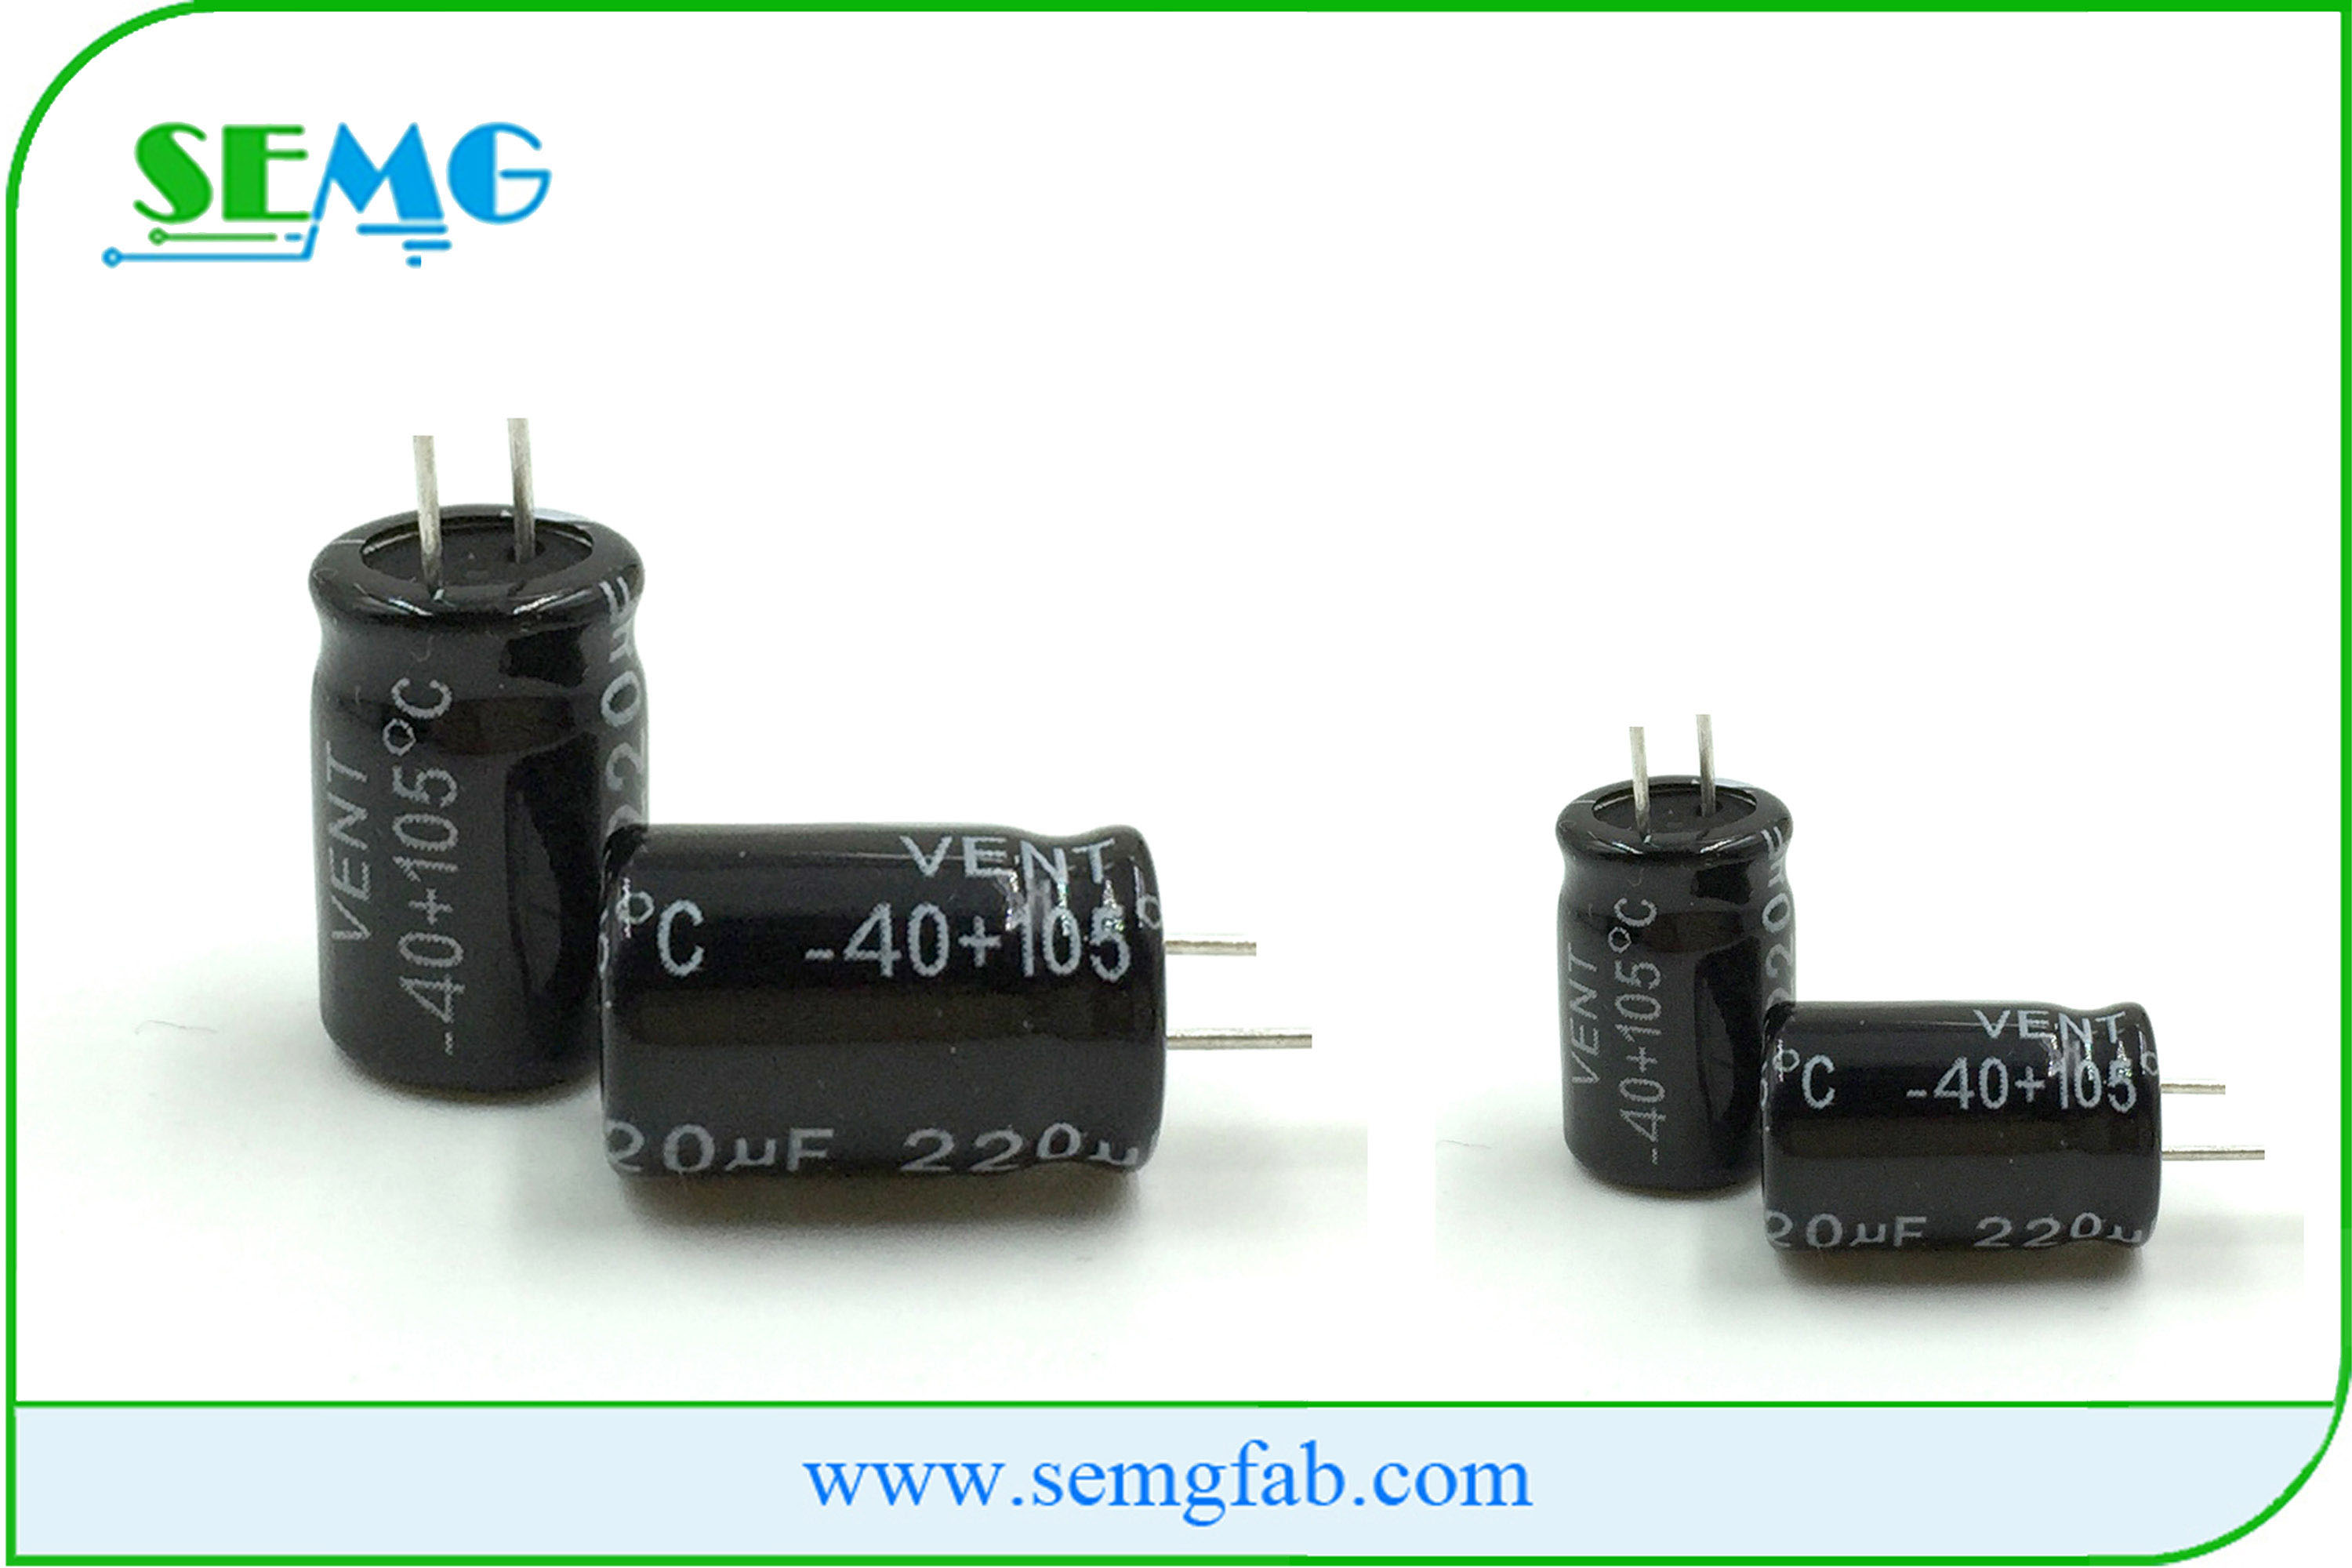 150 uF 400v Capacitor High Voltage Capacitor Motor capacitor